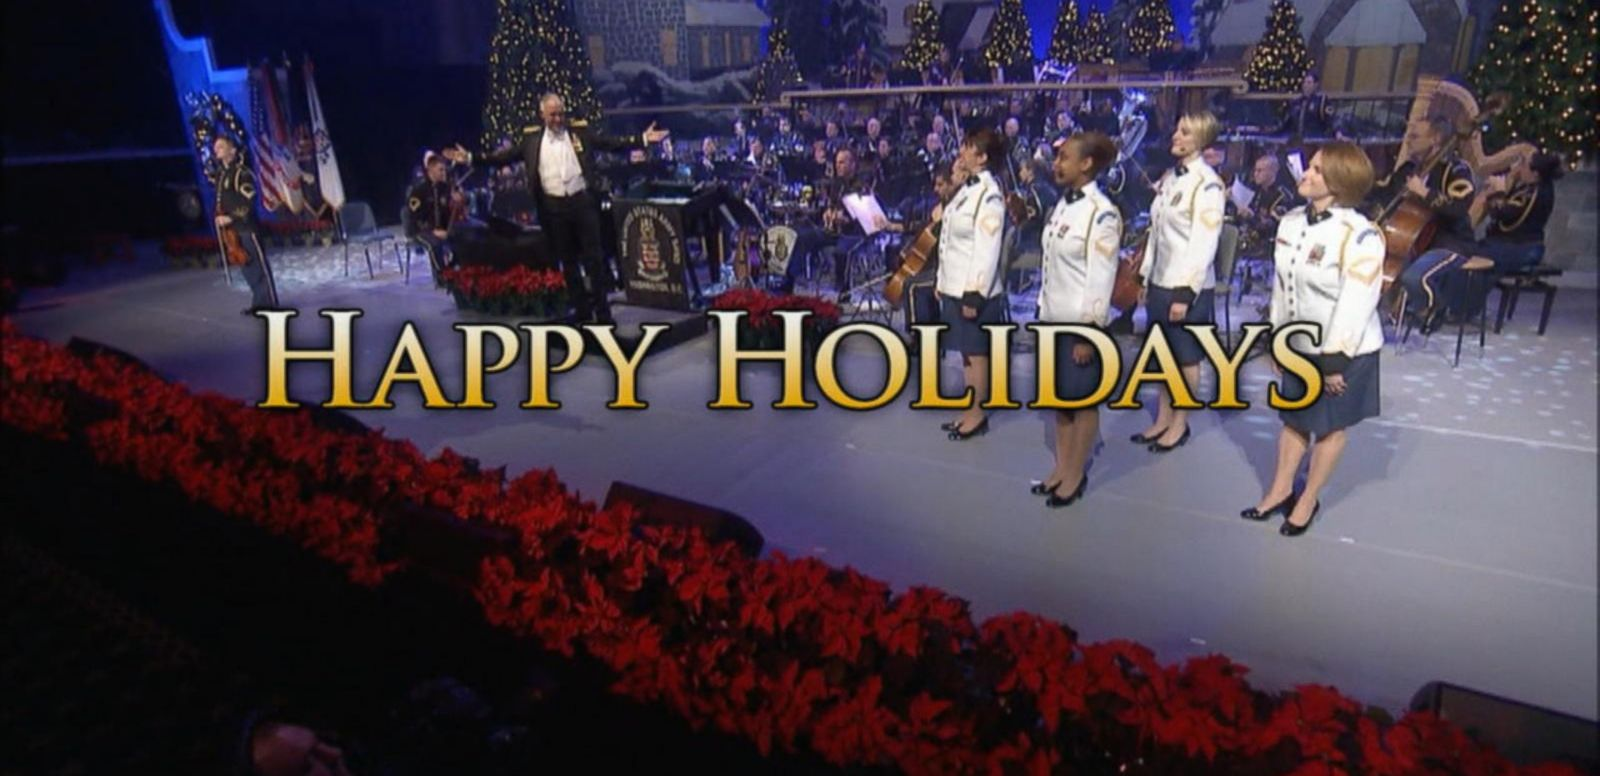 VIDEO: 'This Week' Holiday Greetings 2014